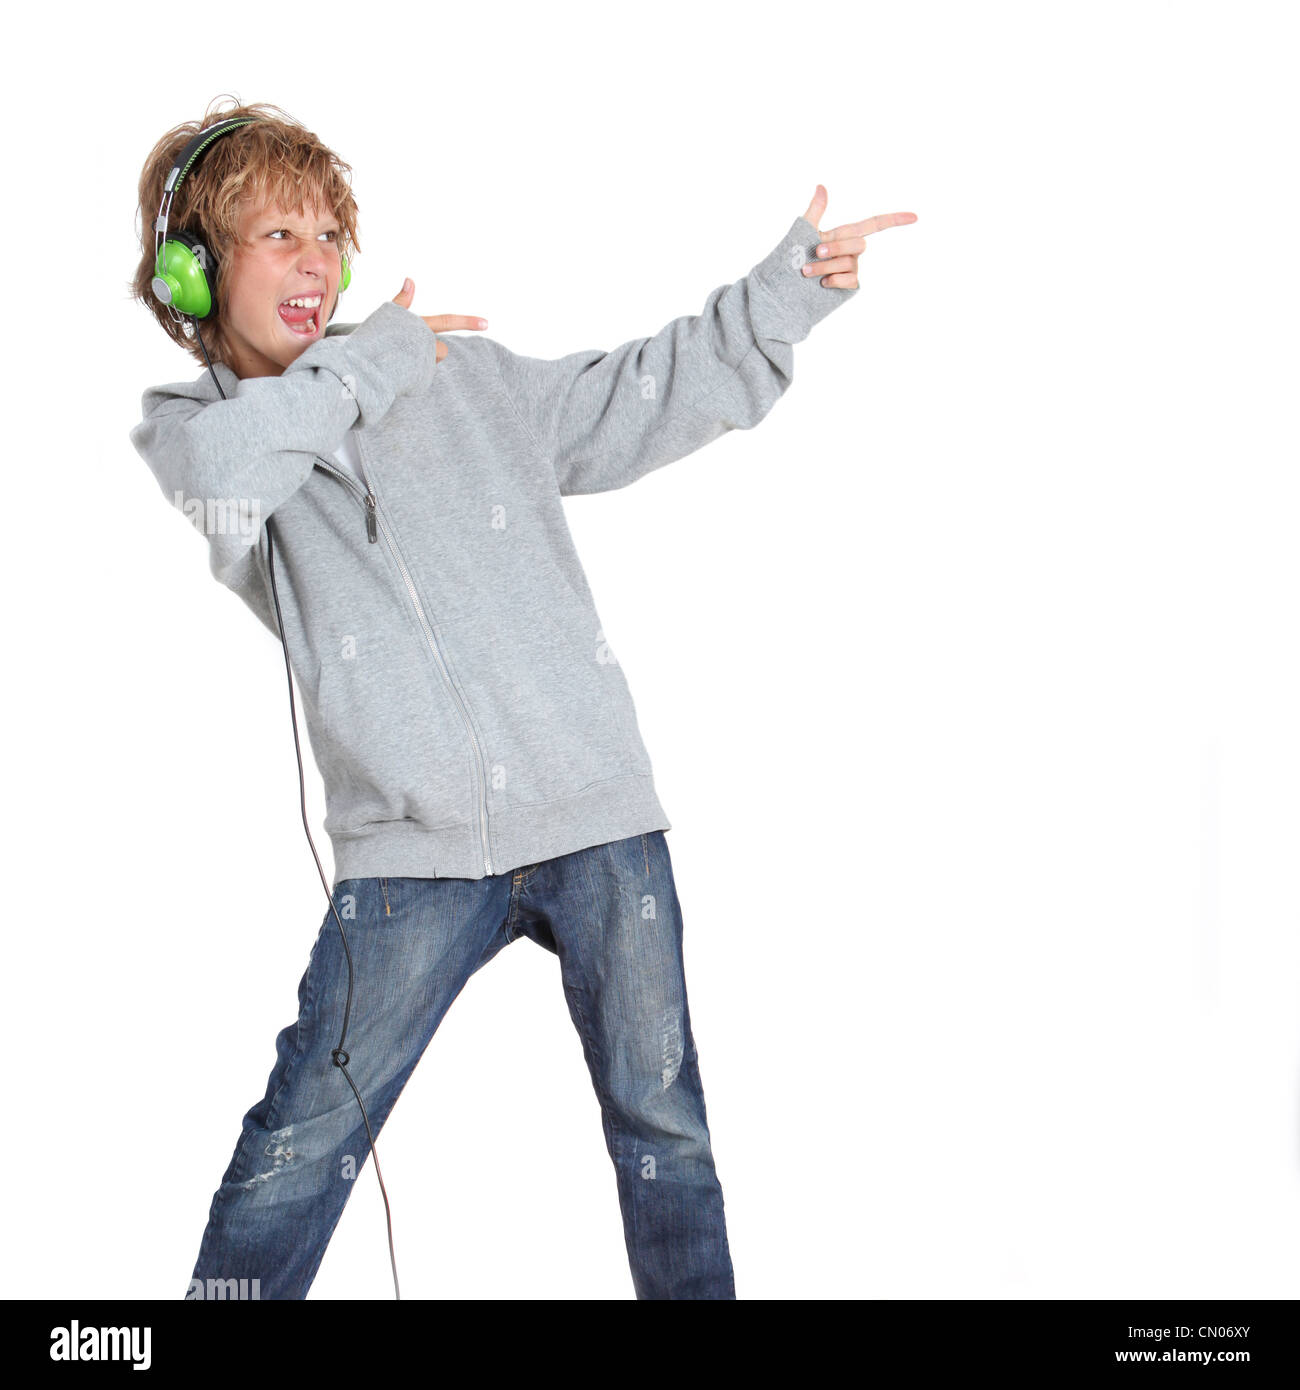 kid pointing and listening to music - Stock Image